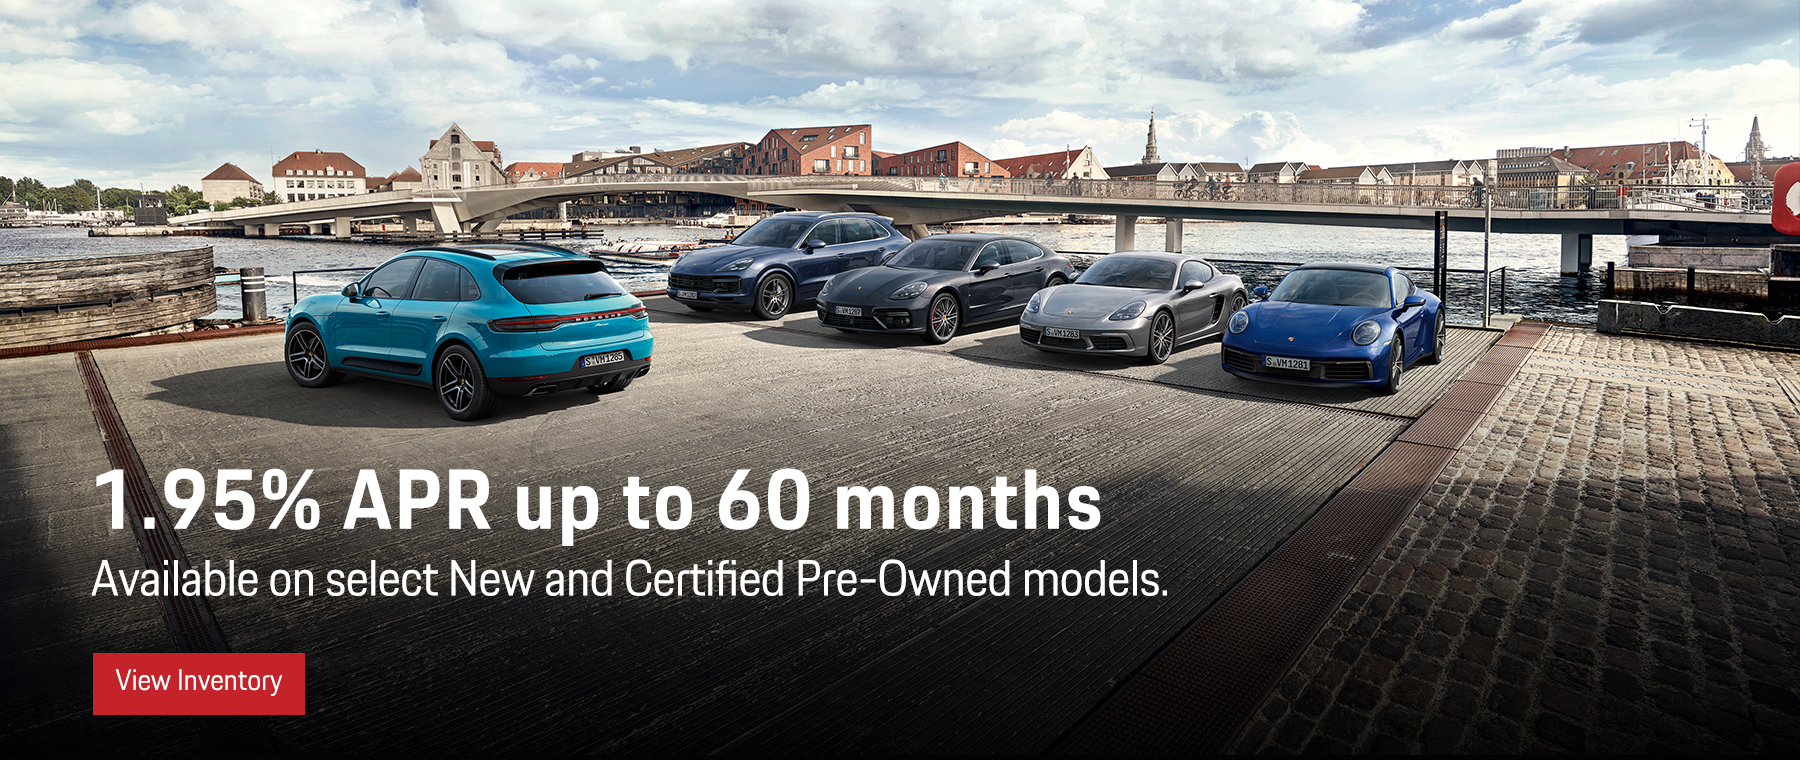 1.9% APR up to 60 months on select new and cpo models